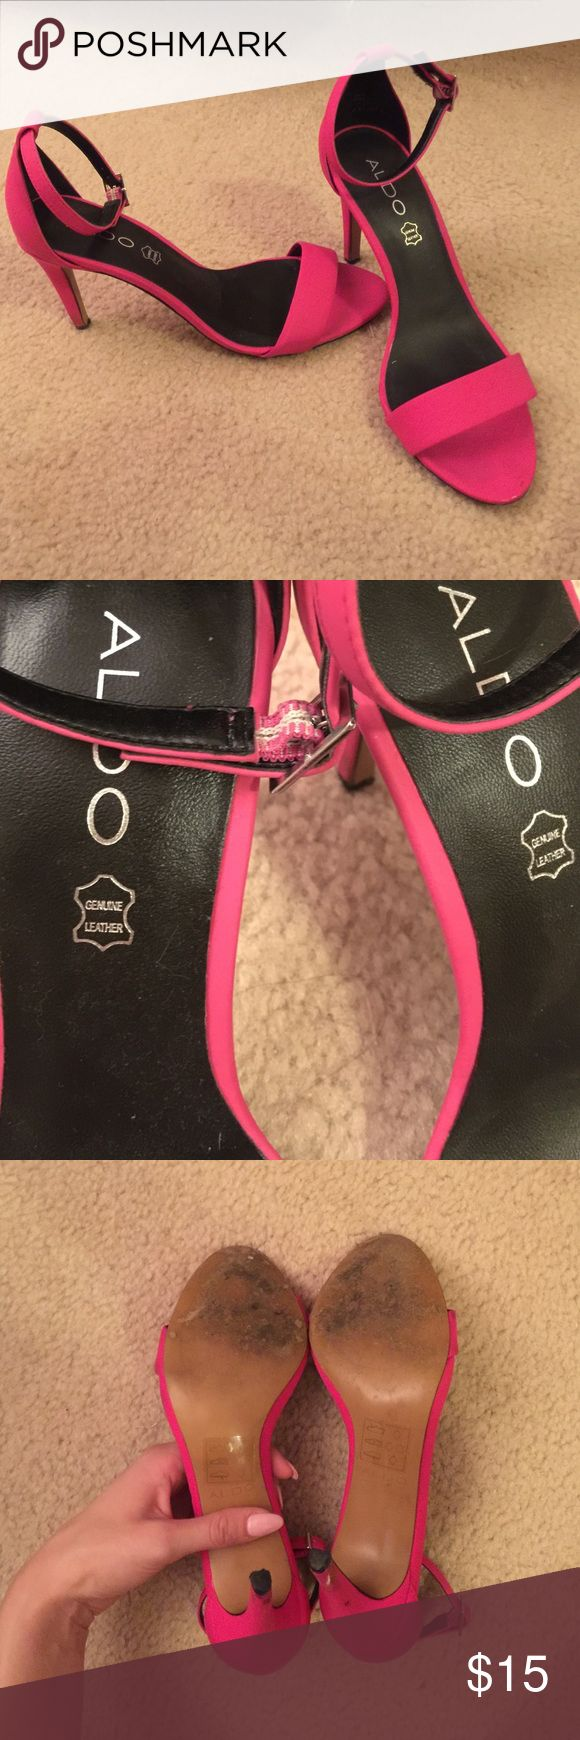 ALDO heels Super cute fun pink Aldo heel.  Worn a few times, sole is genuine leather the rest is synthetic.  Heel is 3 inches Aldo Shoes Heels